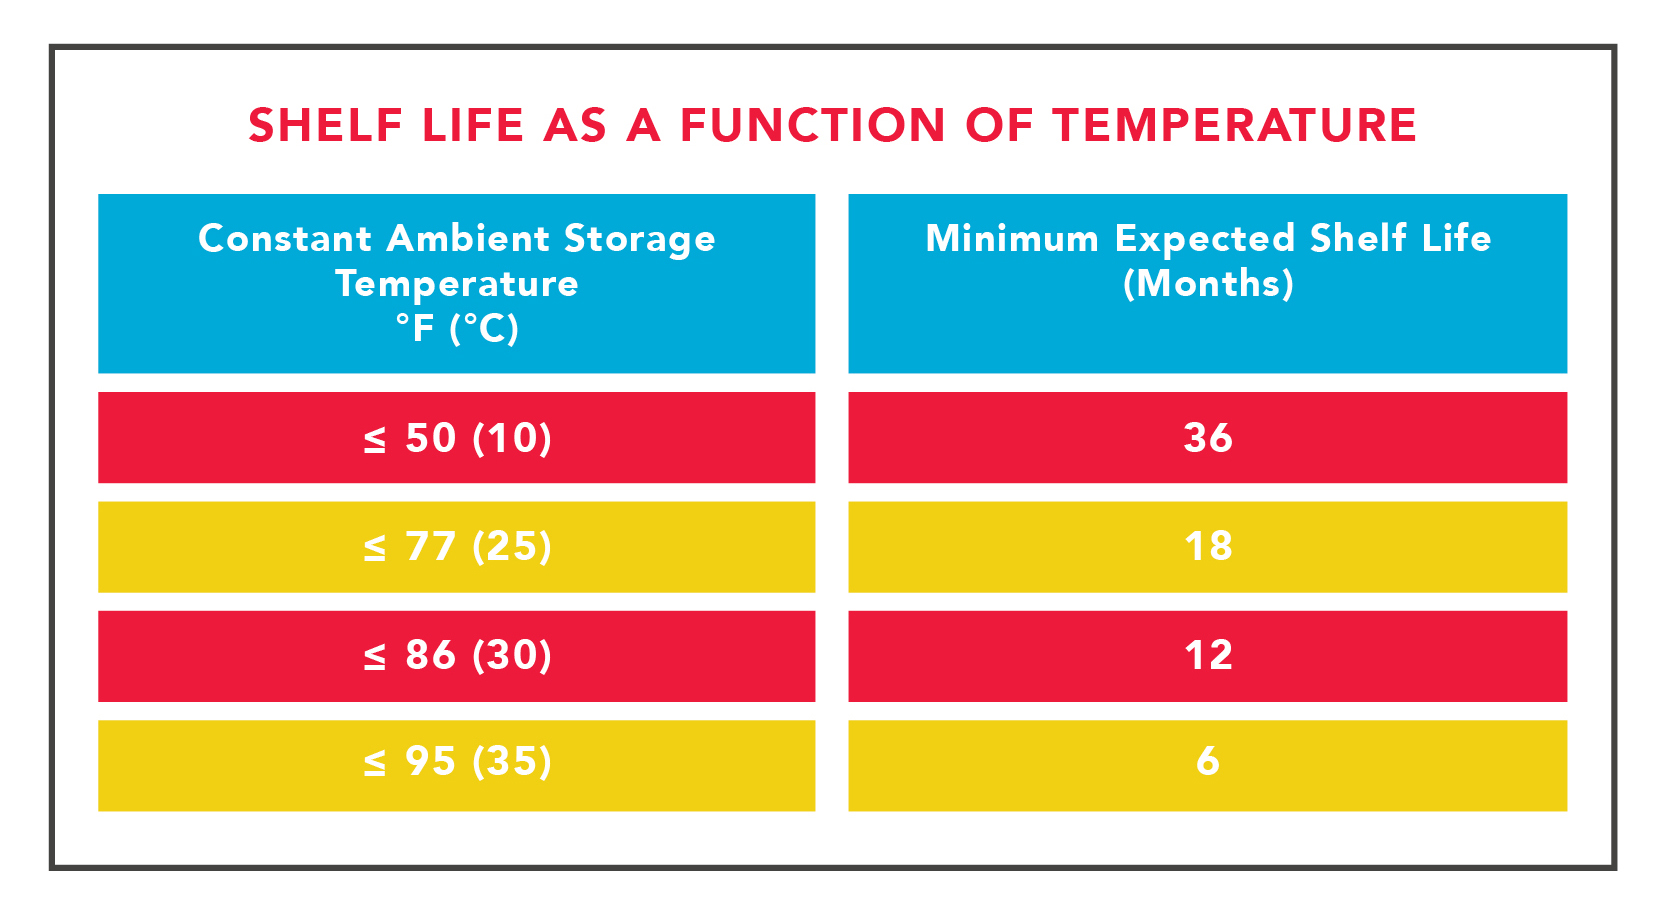 Urea shelf life as a function of temperature.